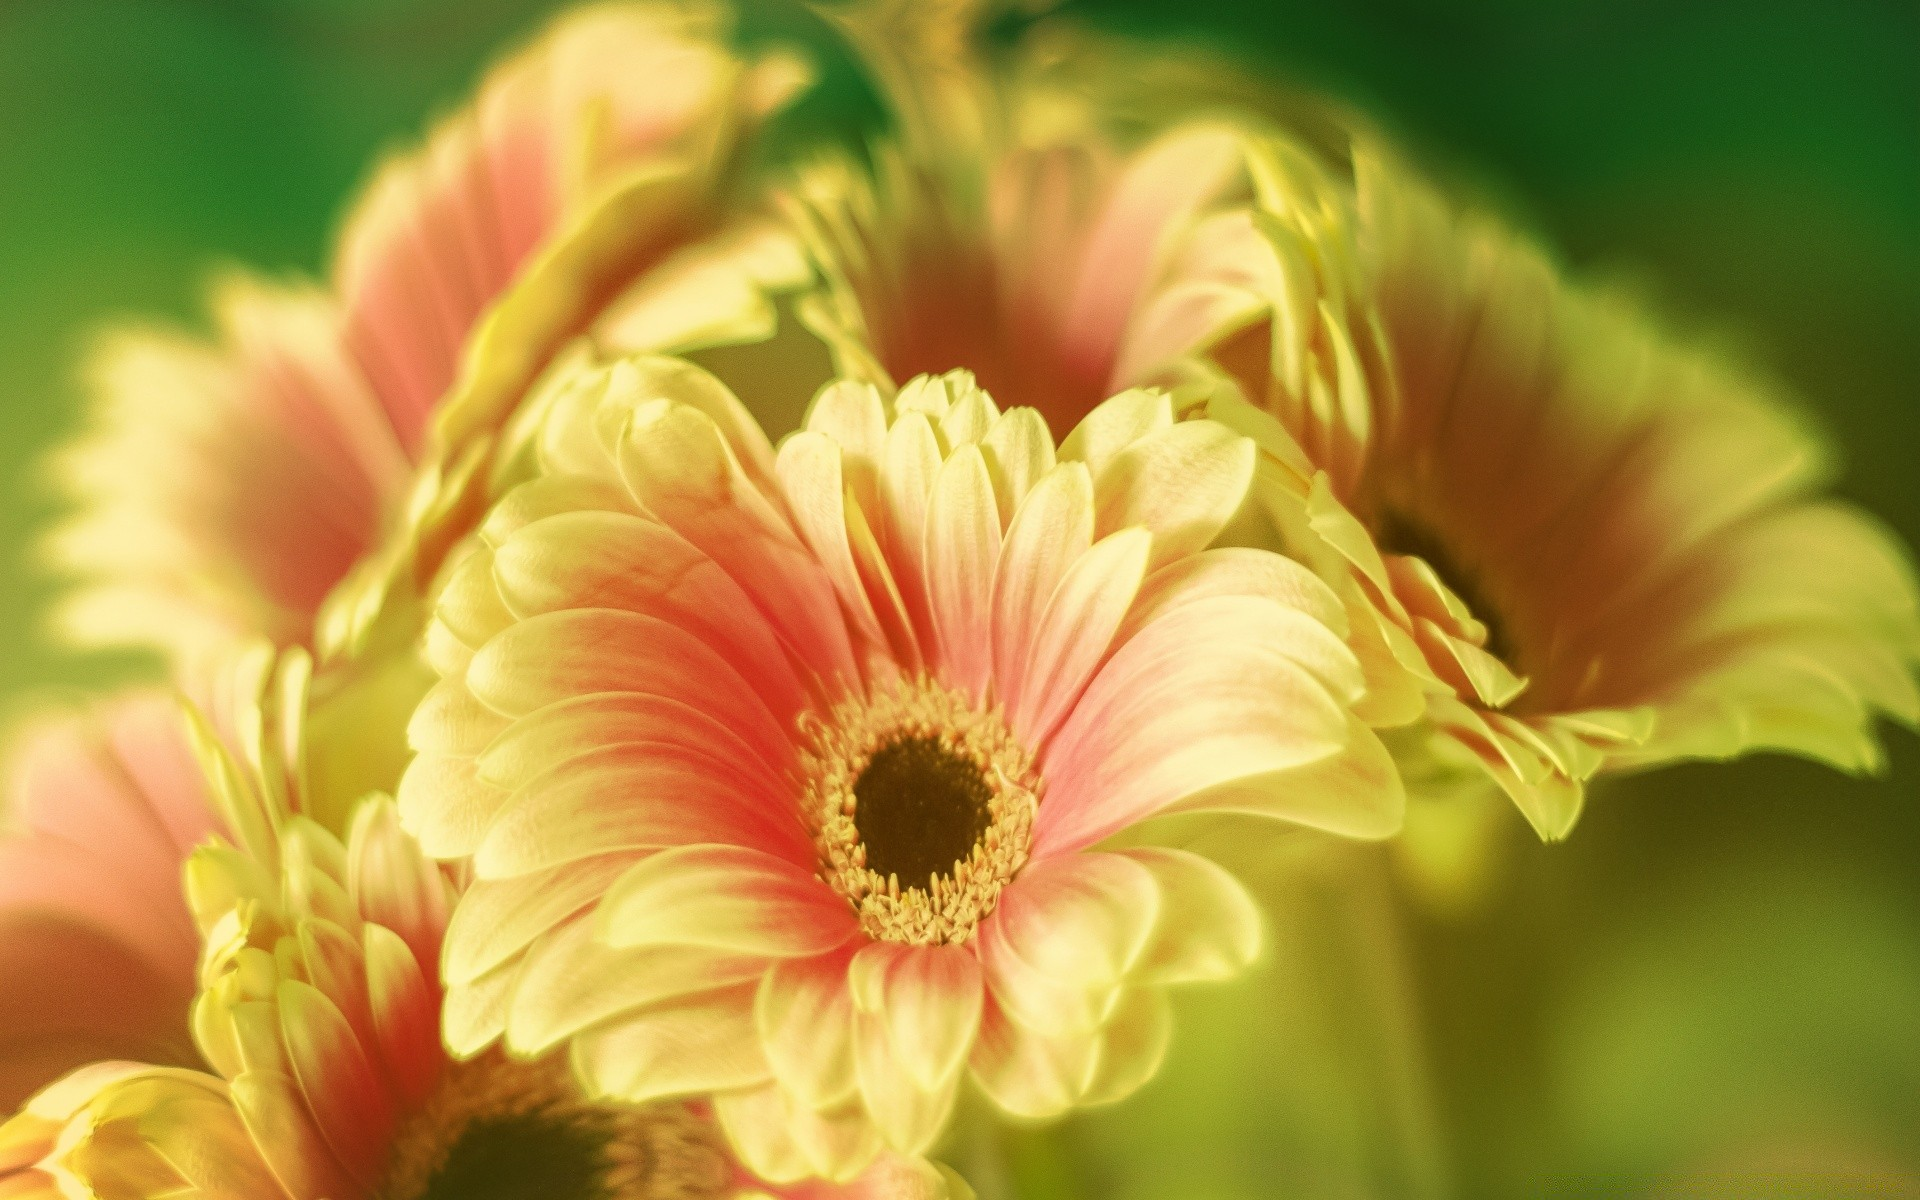 gerbera daisy bouquet. iphone wallpapers for free.